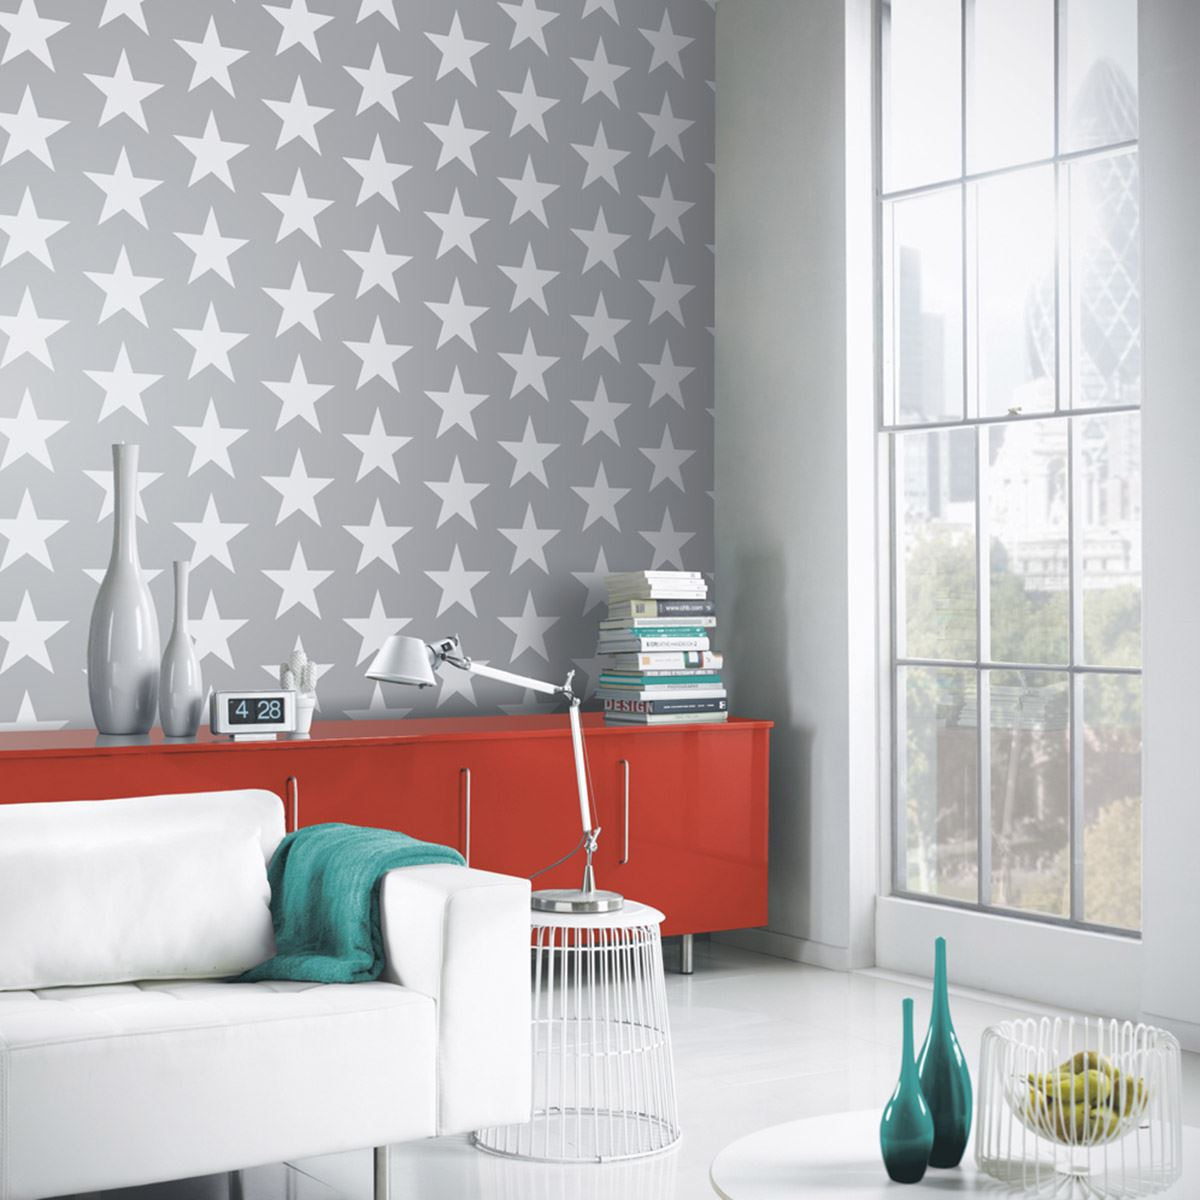 GREY WALLPAPER PATTERNED STARS FLORAL FEATHERS TREES MARBLE